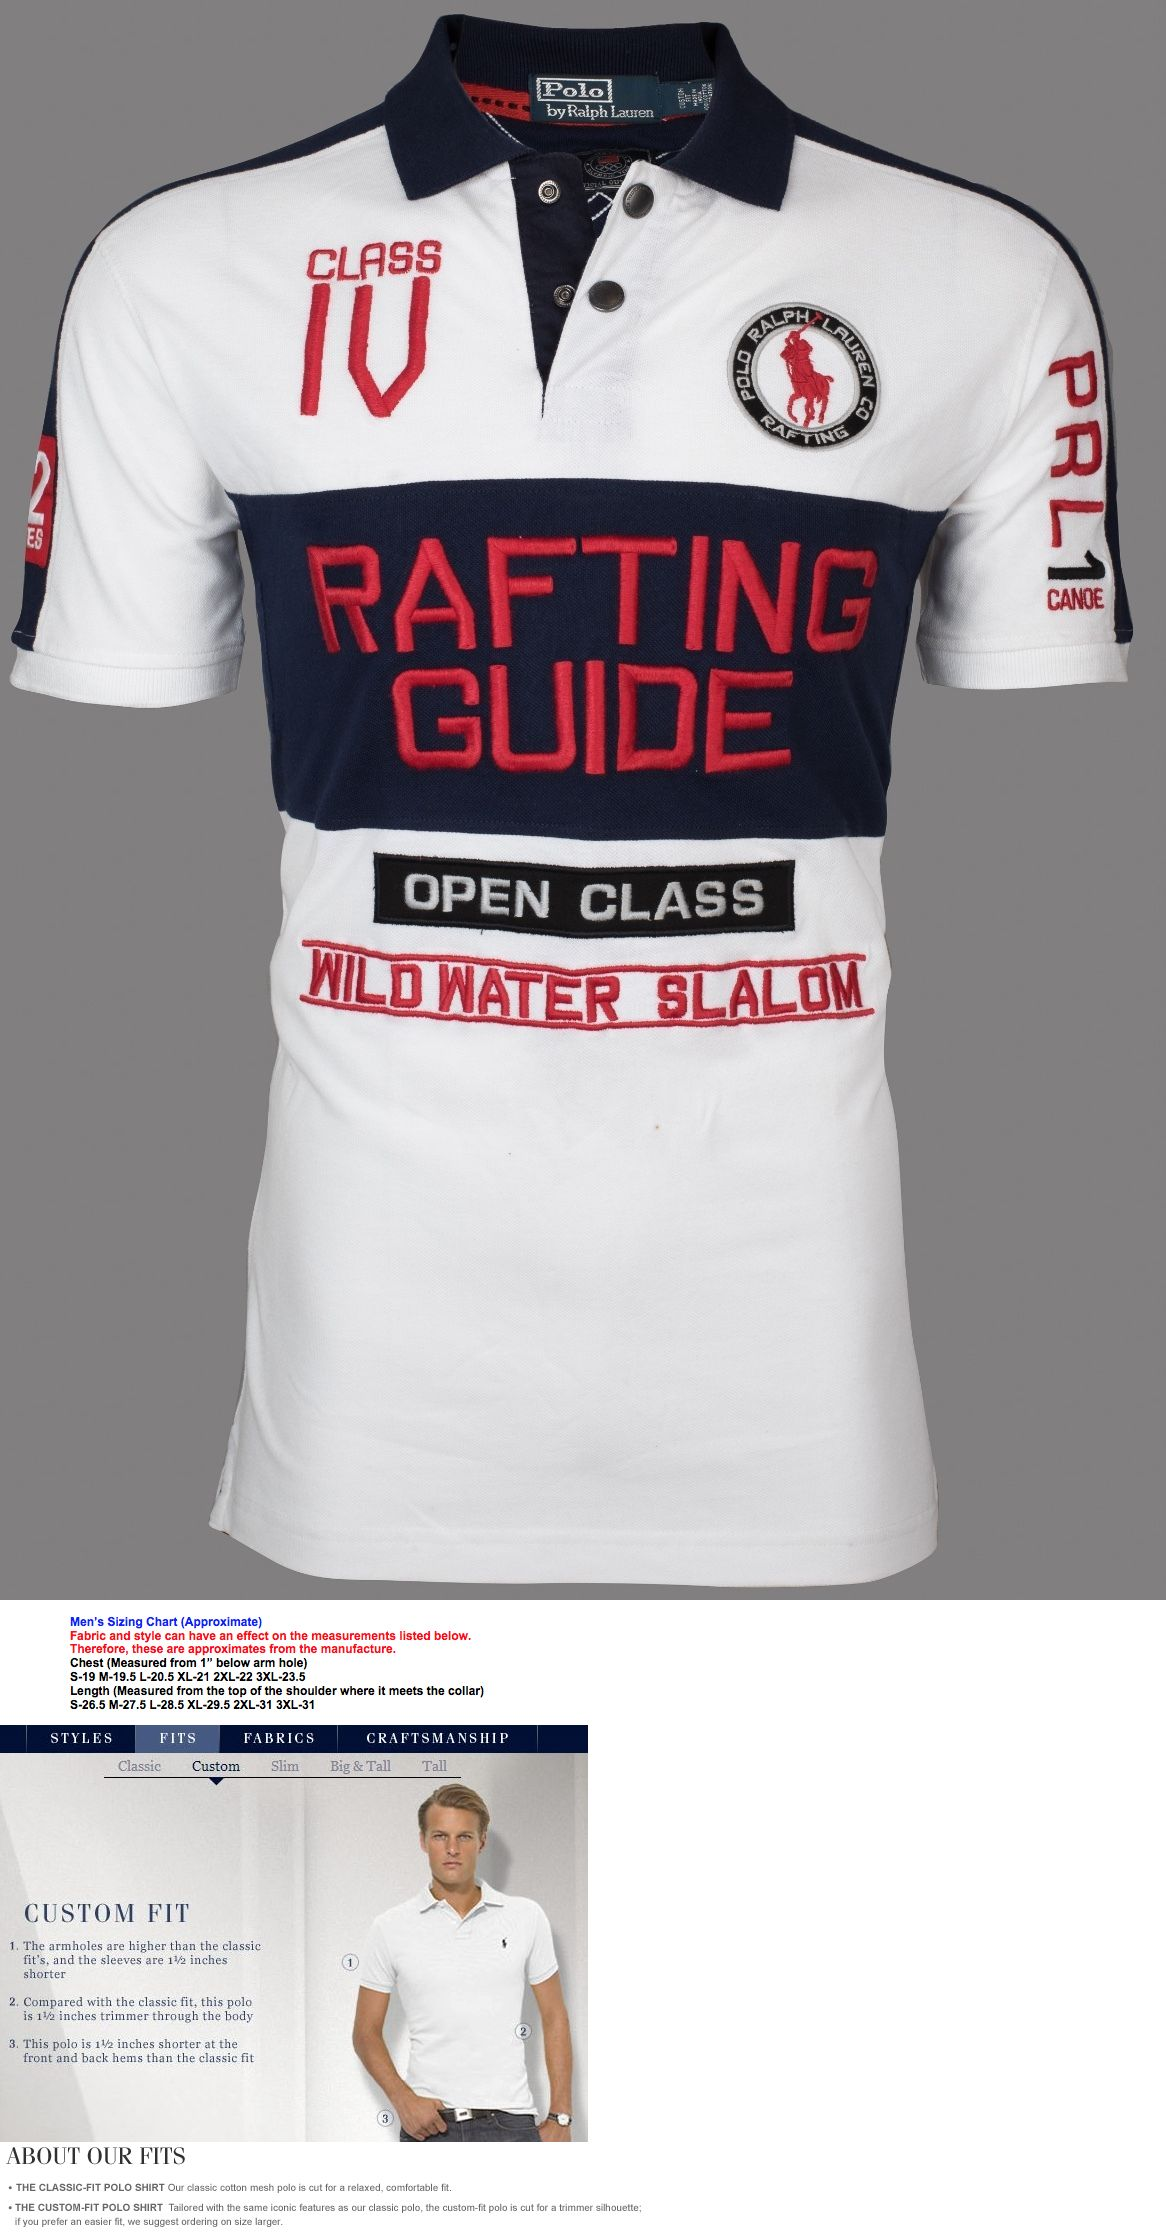 36d983ef0 Polos 185101  Polo Ralph Lauren Men Custom Fit Embroidered White Polo Shirt  Rafting Guide  145 -  BUY IT NOW ONLY   39.99 on eBay!